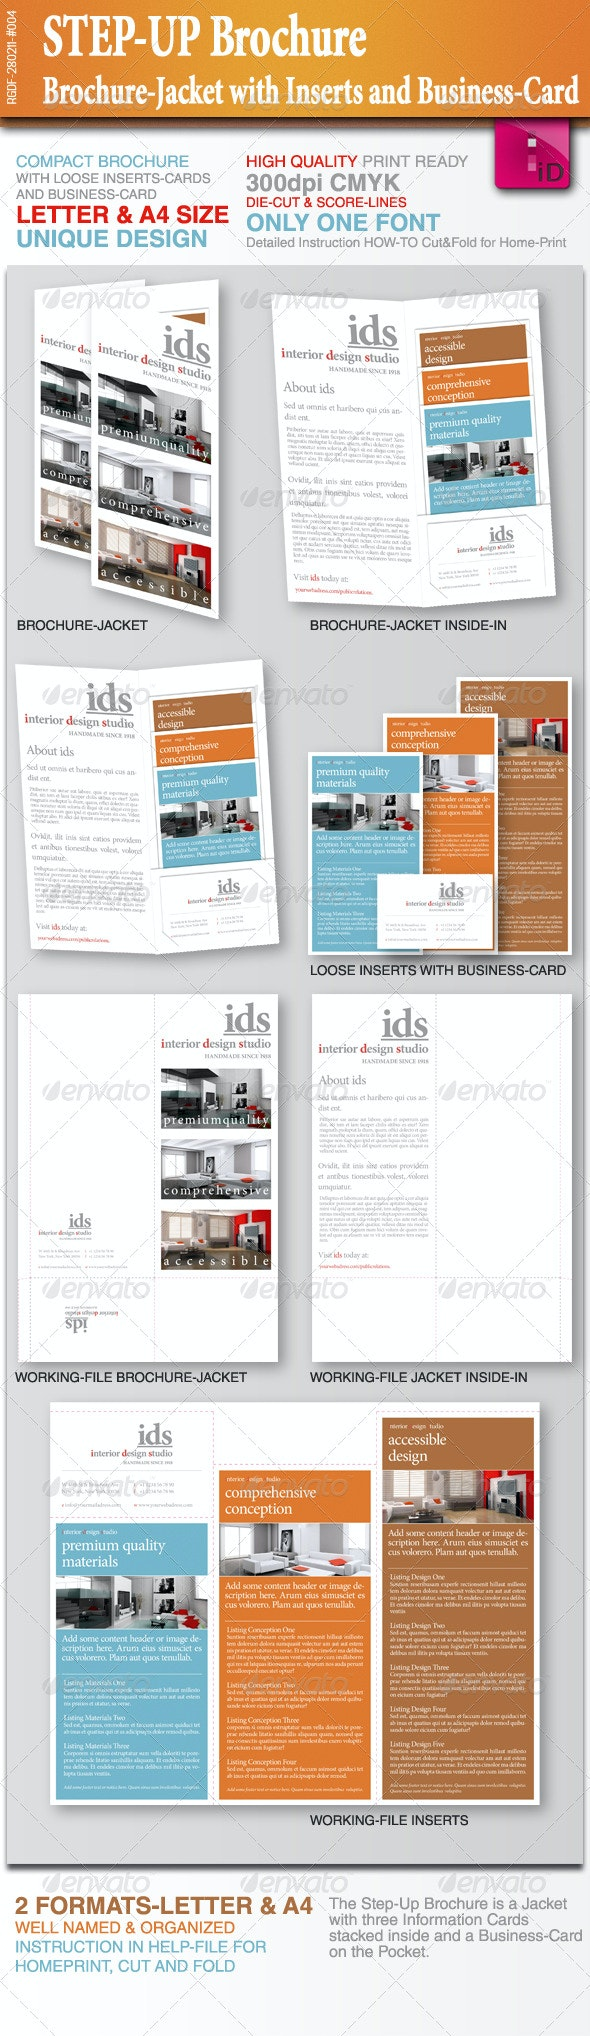 STEP-UP Brochure with Inserts and Business-Card - Corporate Brochures